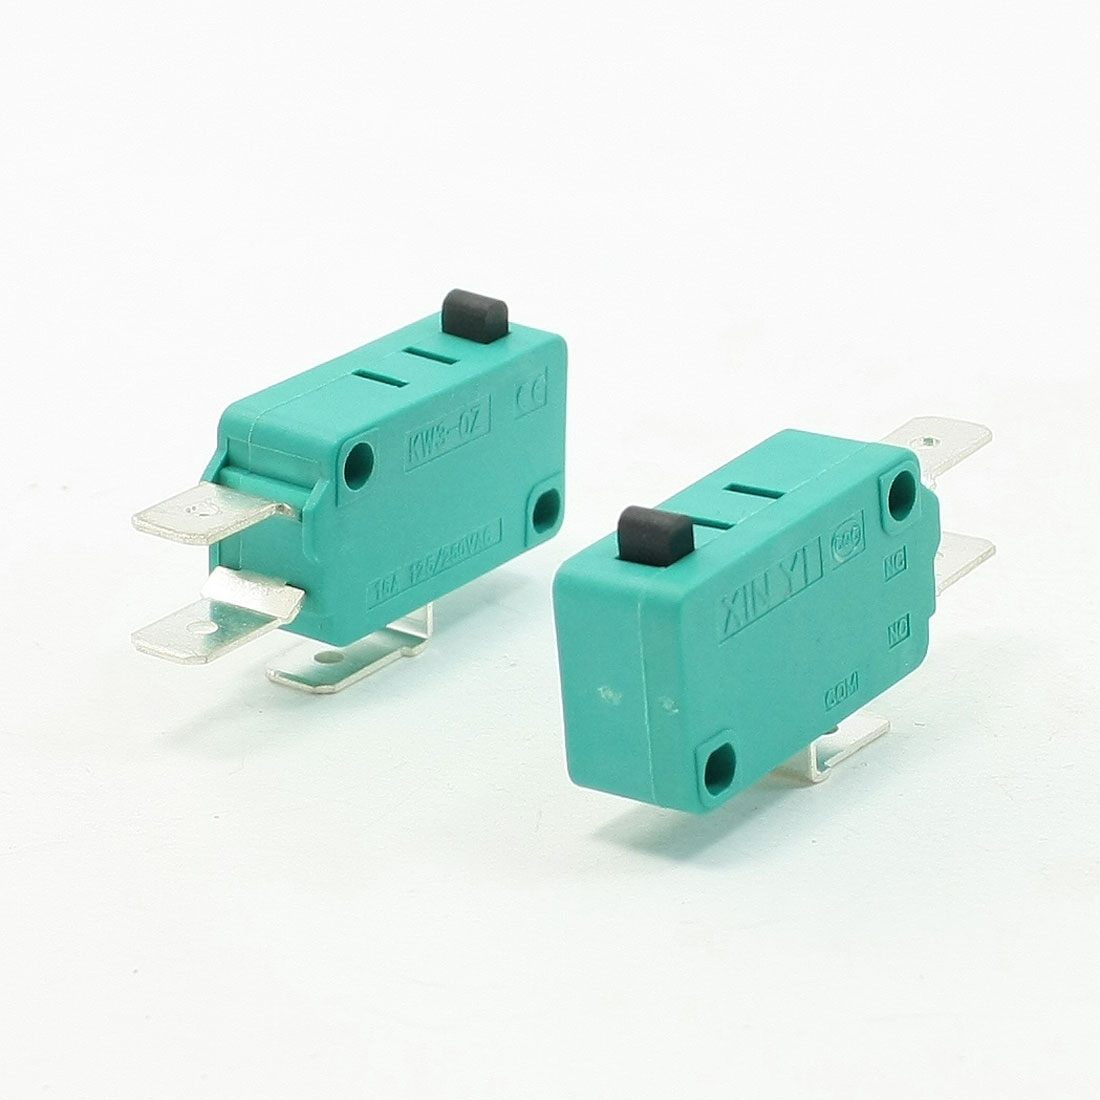 2 Pcs AC 250V 16A SPDT 3P Momentary Push Button Miniature Micro Switch Green